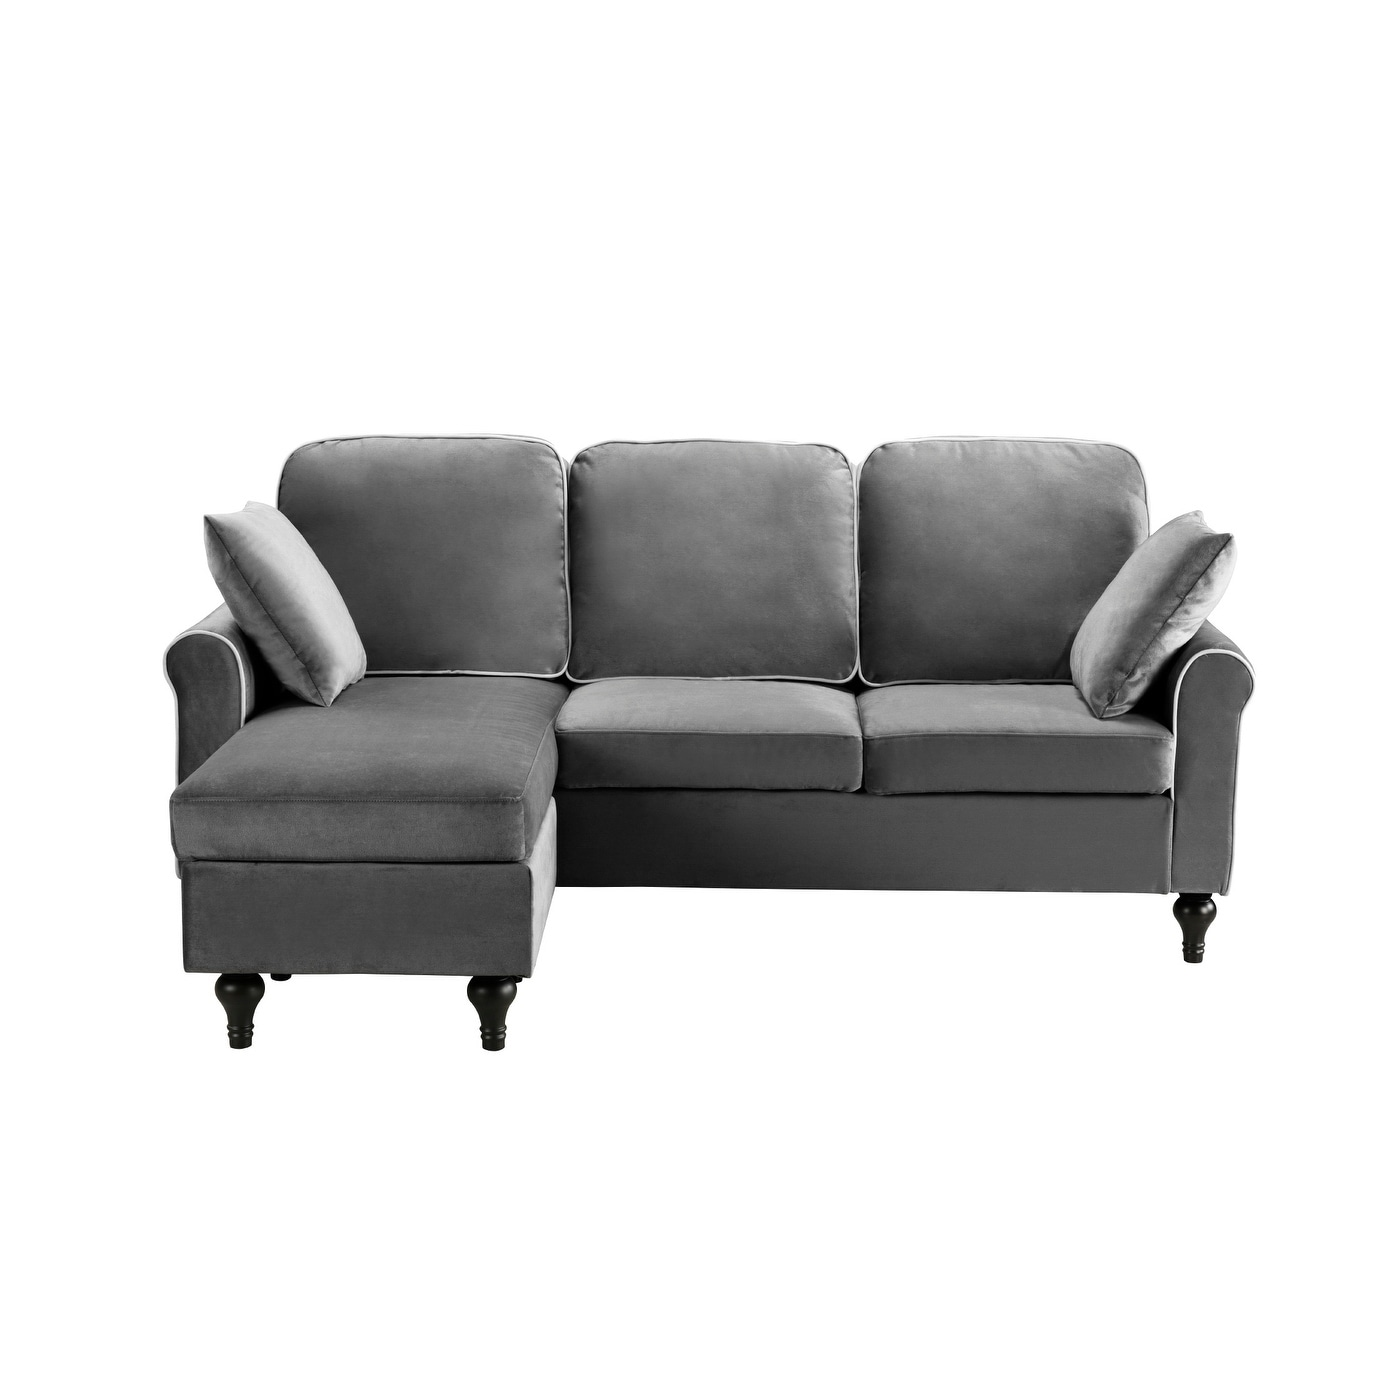 Shop Black Friday Deals On Traditional Small Space Velvet Sectional Sofa With Reversible Chaise Overstock 13190443 Brown